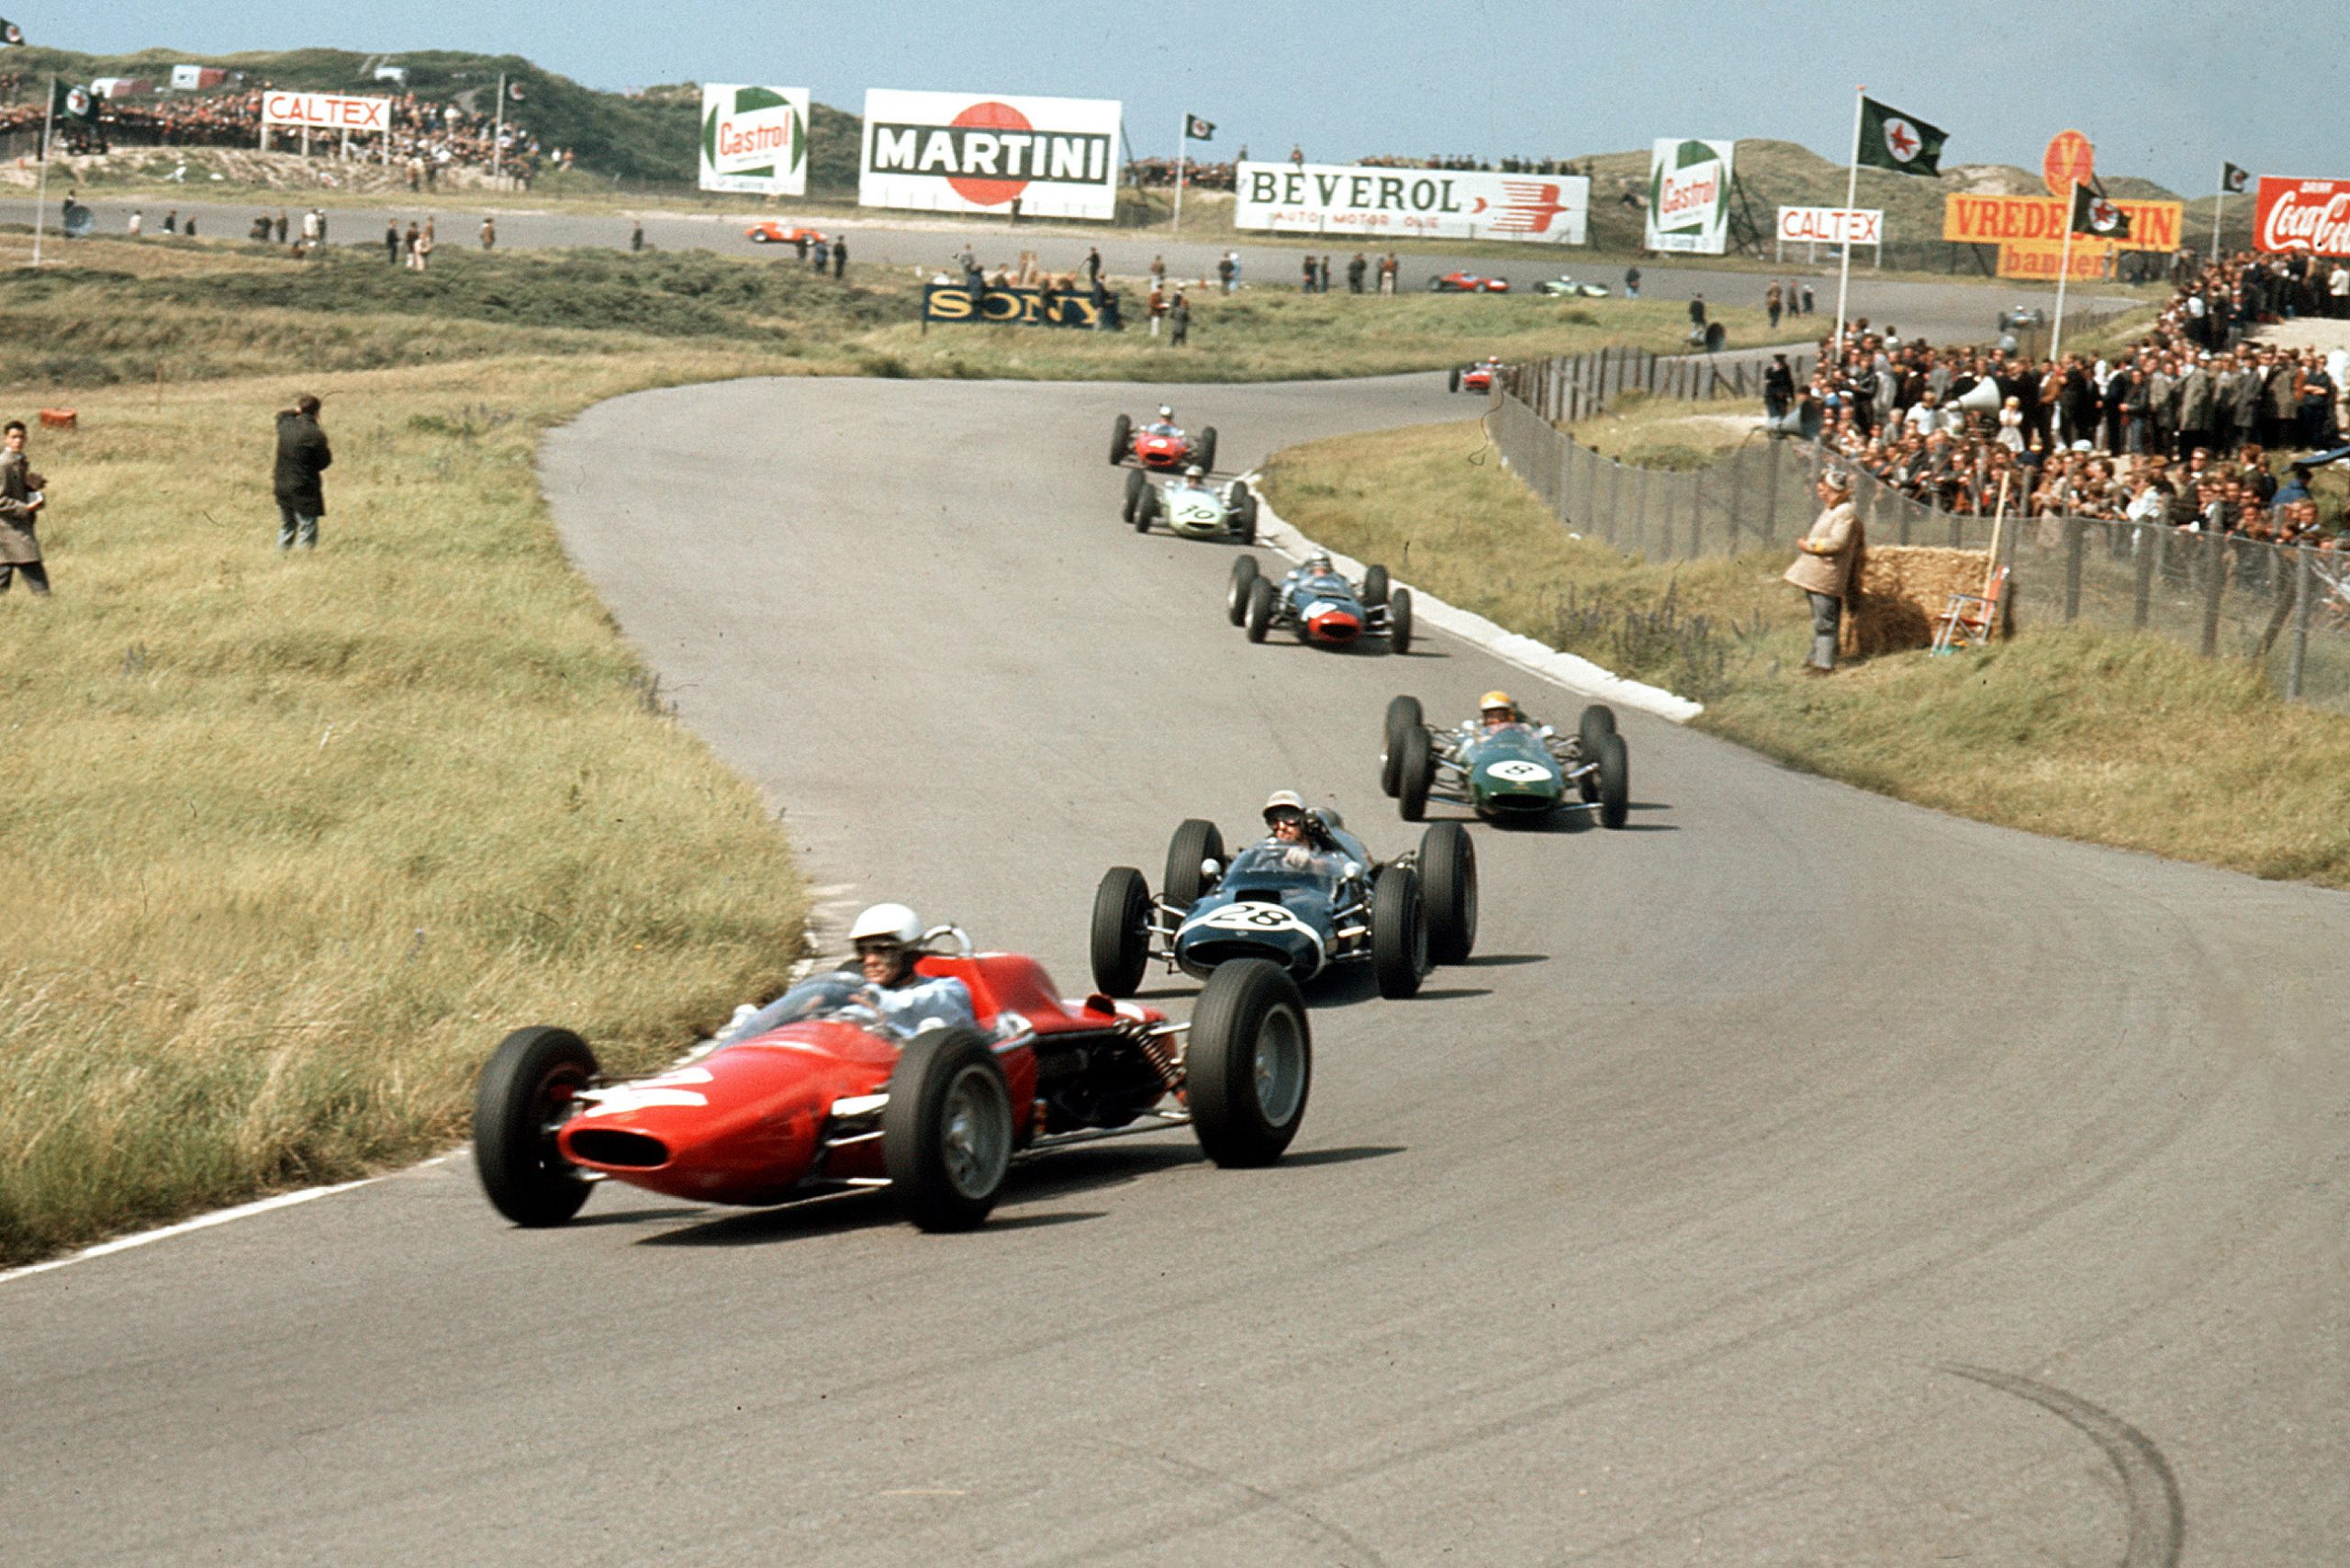 Phil Hill in an ATS 100 leads Jo Bonnier in a Cooper T60 Climax, Trevor Taylor in a Lotus 25 Climax, Chris Amon in a Lola Mk4A Climax and Innes Ireland driving a BRP 1-BRM.